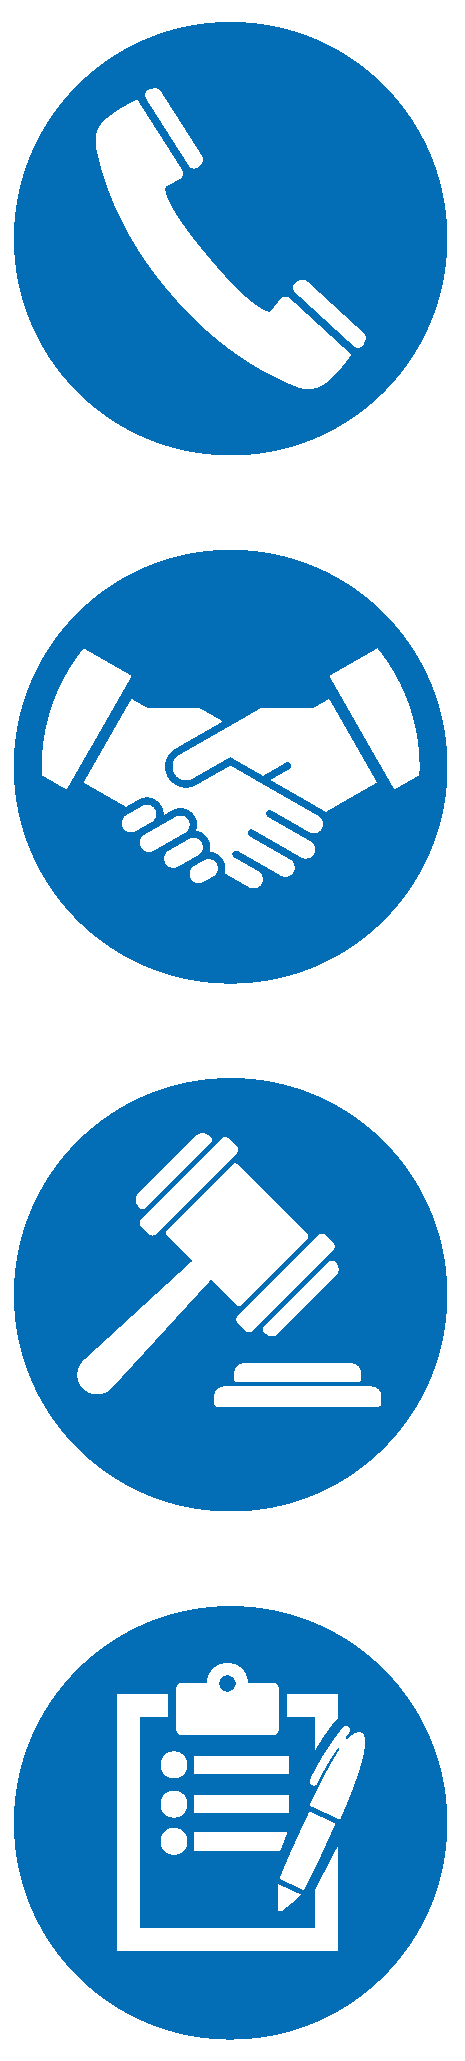 Mediation icons | Noun Project